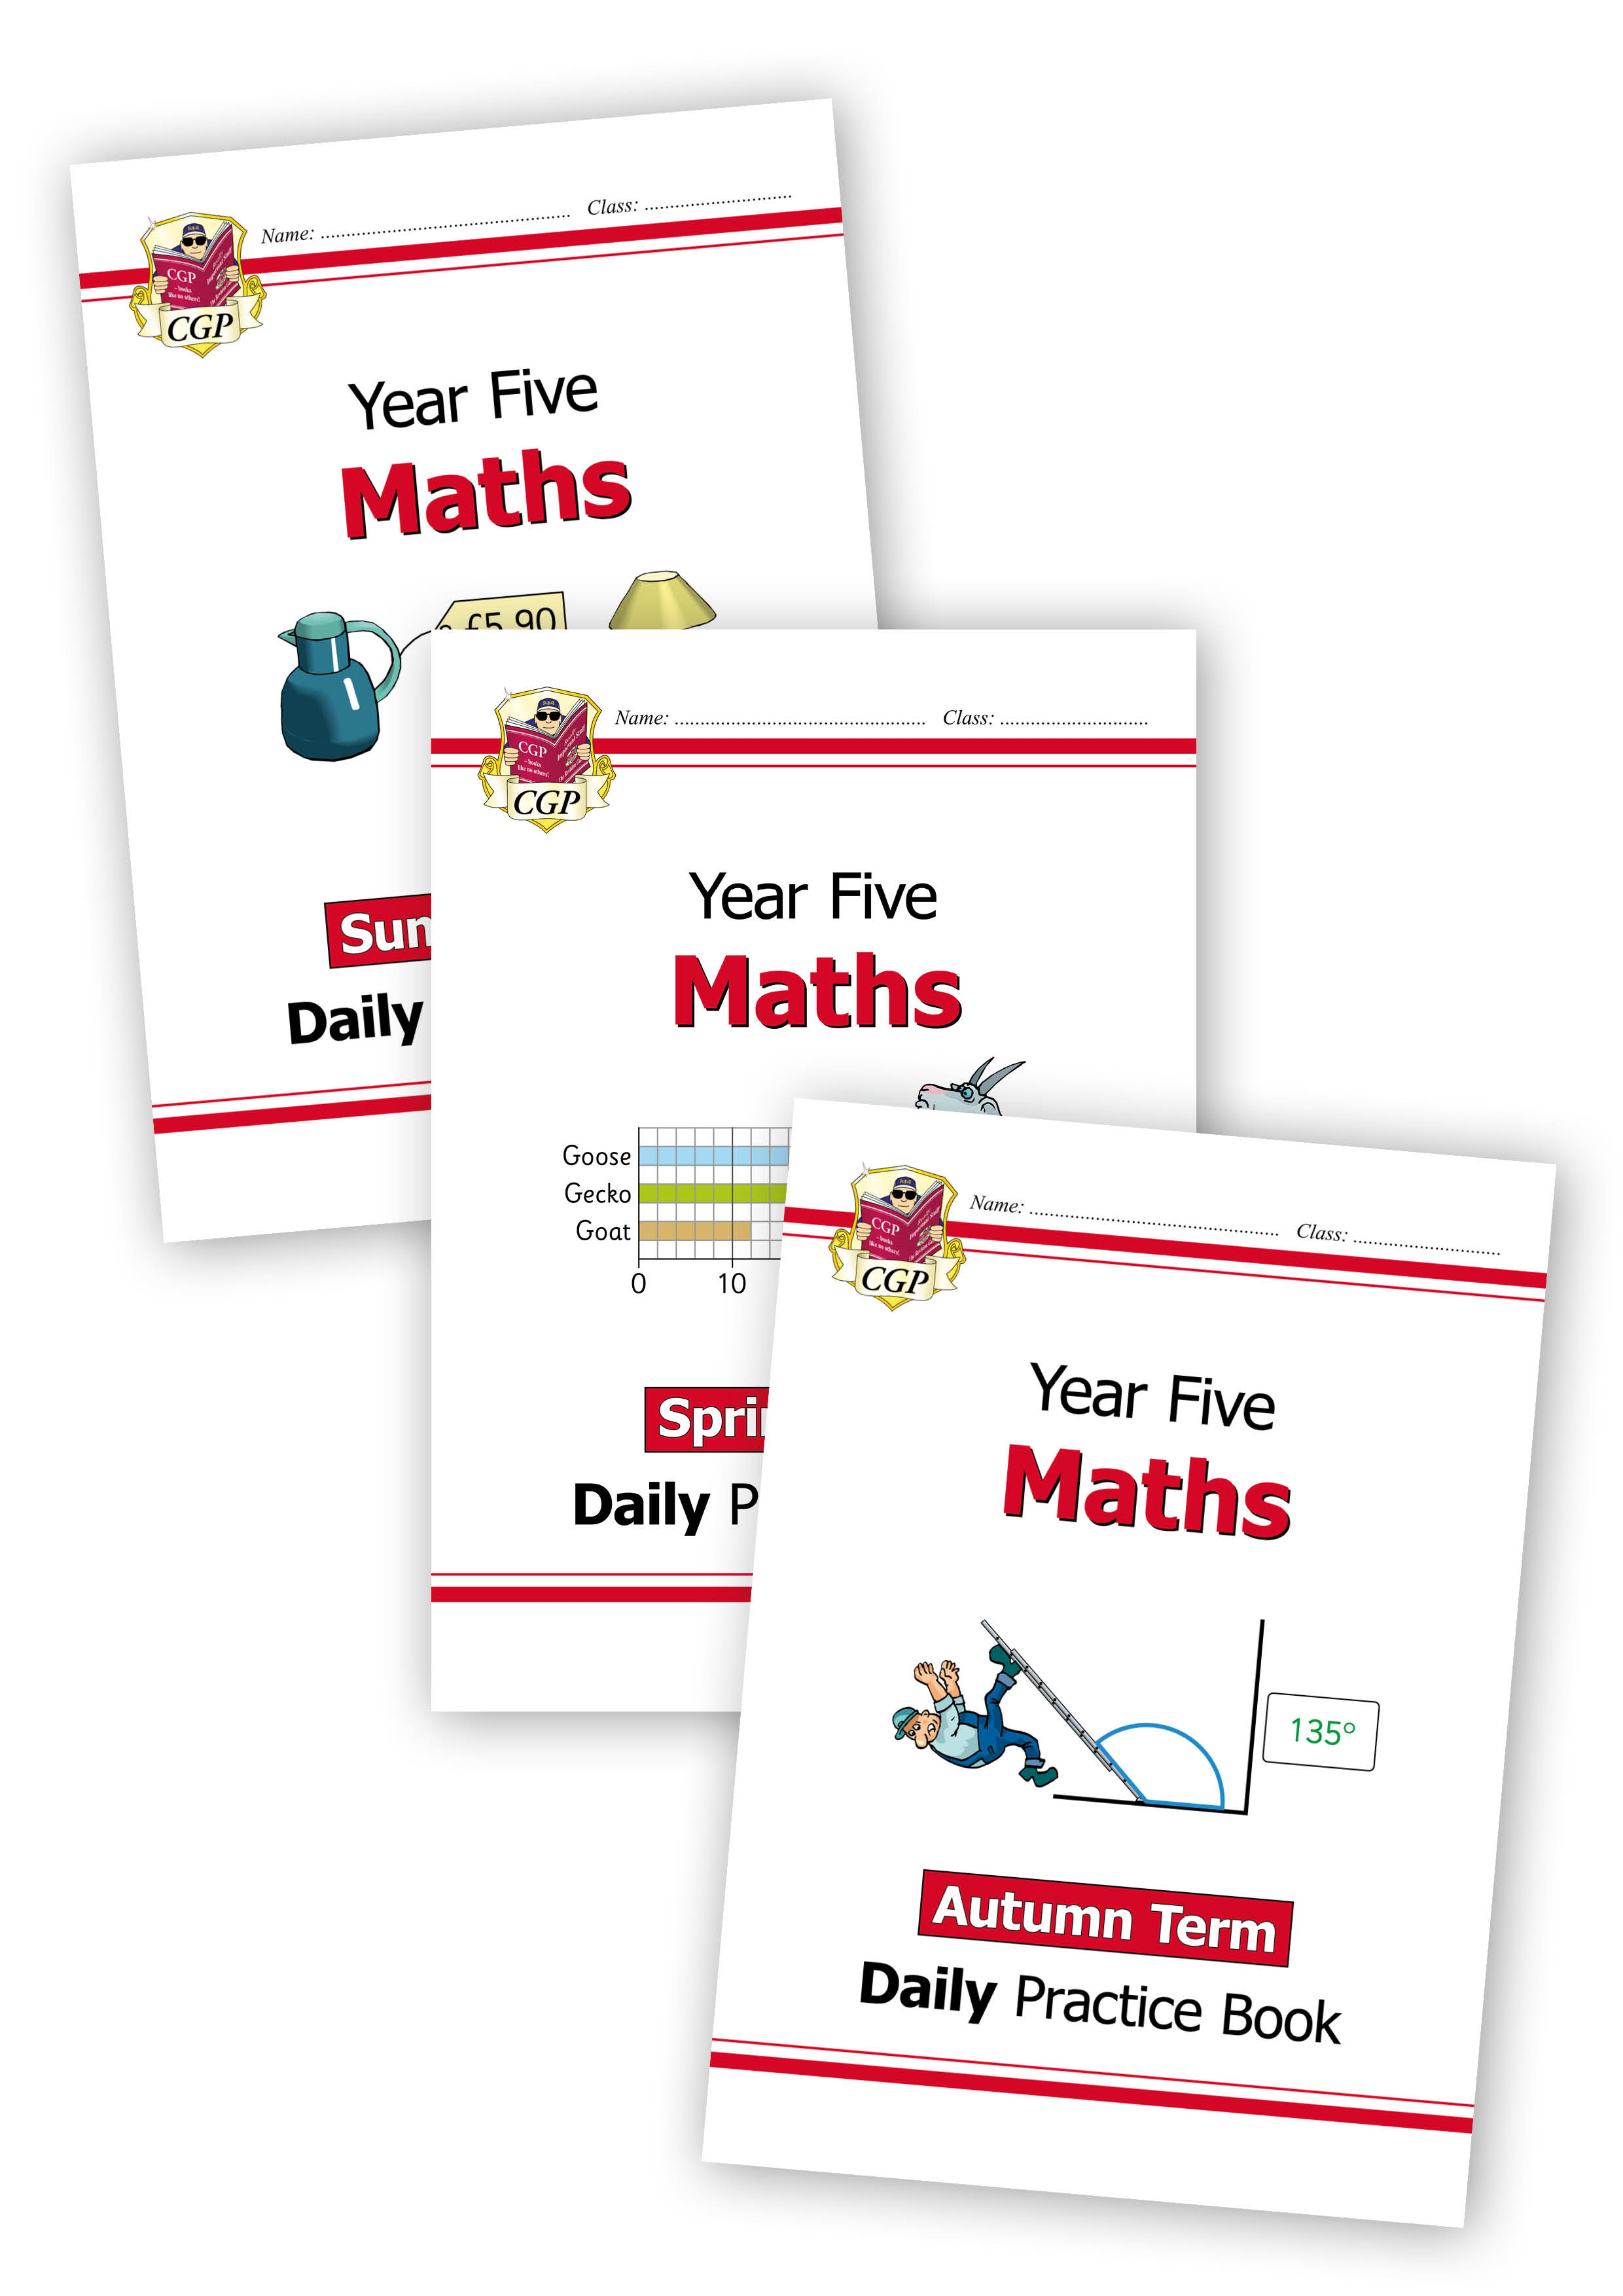 M5WB21 - New KS2 Maths Daily Practice Book Bundle: Year 5 - Autumn Term, Spring Term & Summer Term